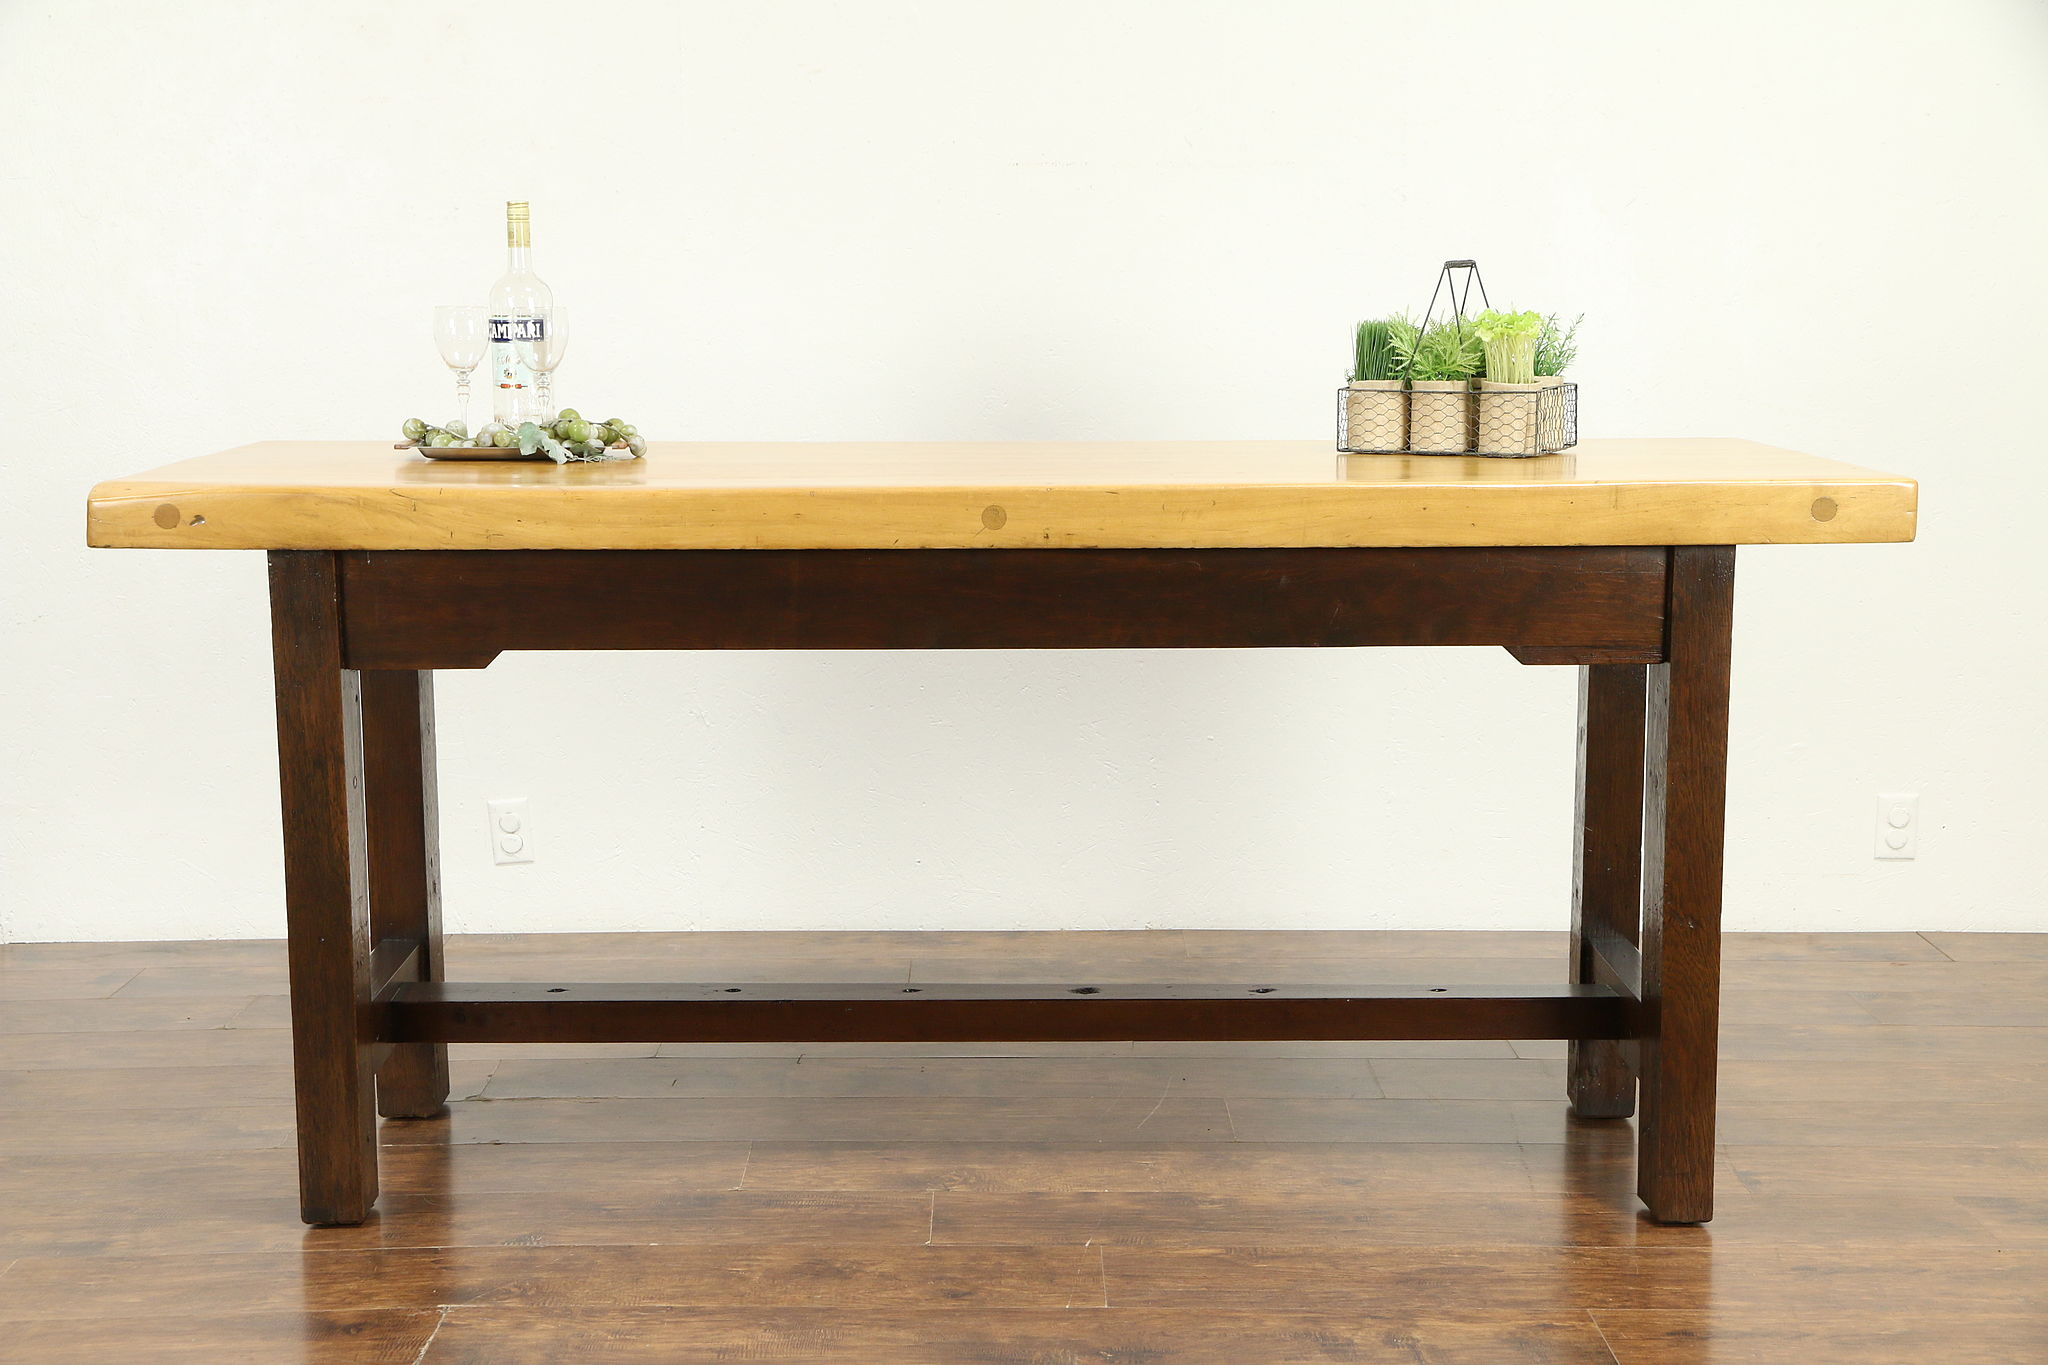 sold - butcher block kitchen island counter or stool